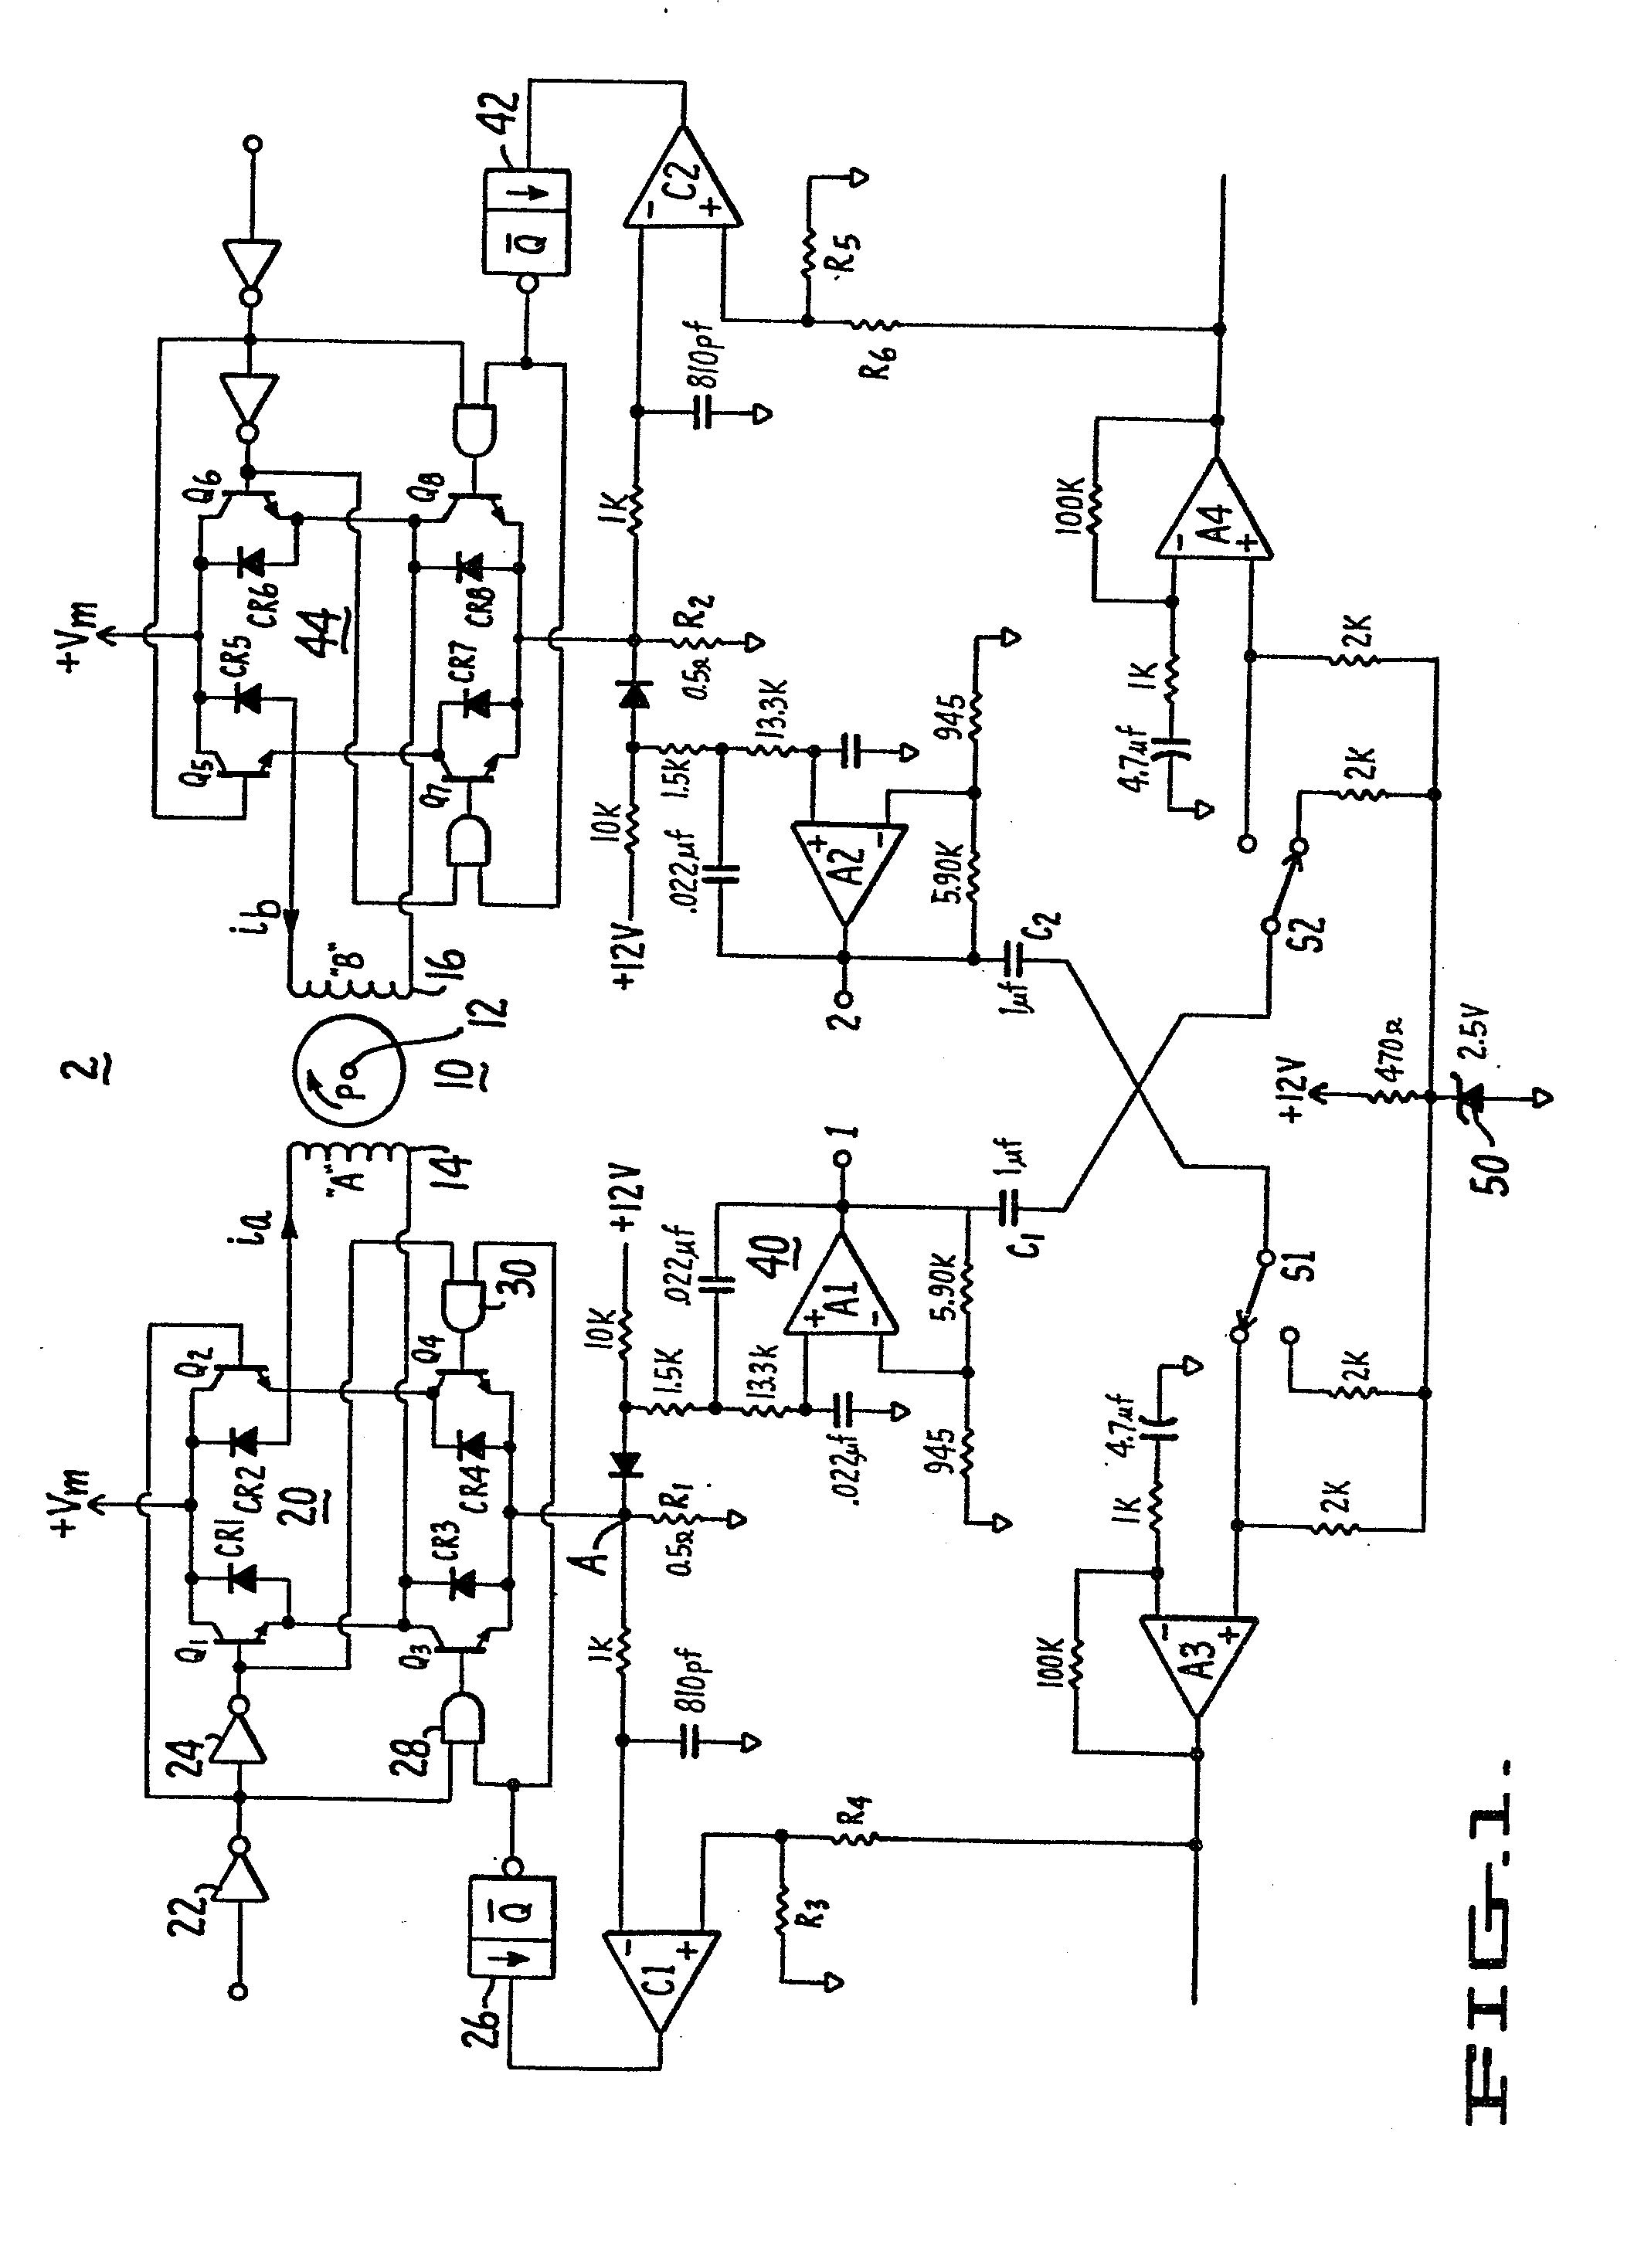 Stepper Motor Damping Circuit And A Method Therefor Patent 0135128 Diode Schematic Symbol Moreover Driver Diagram